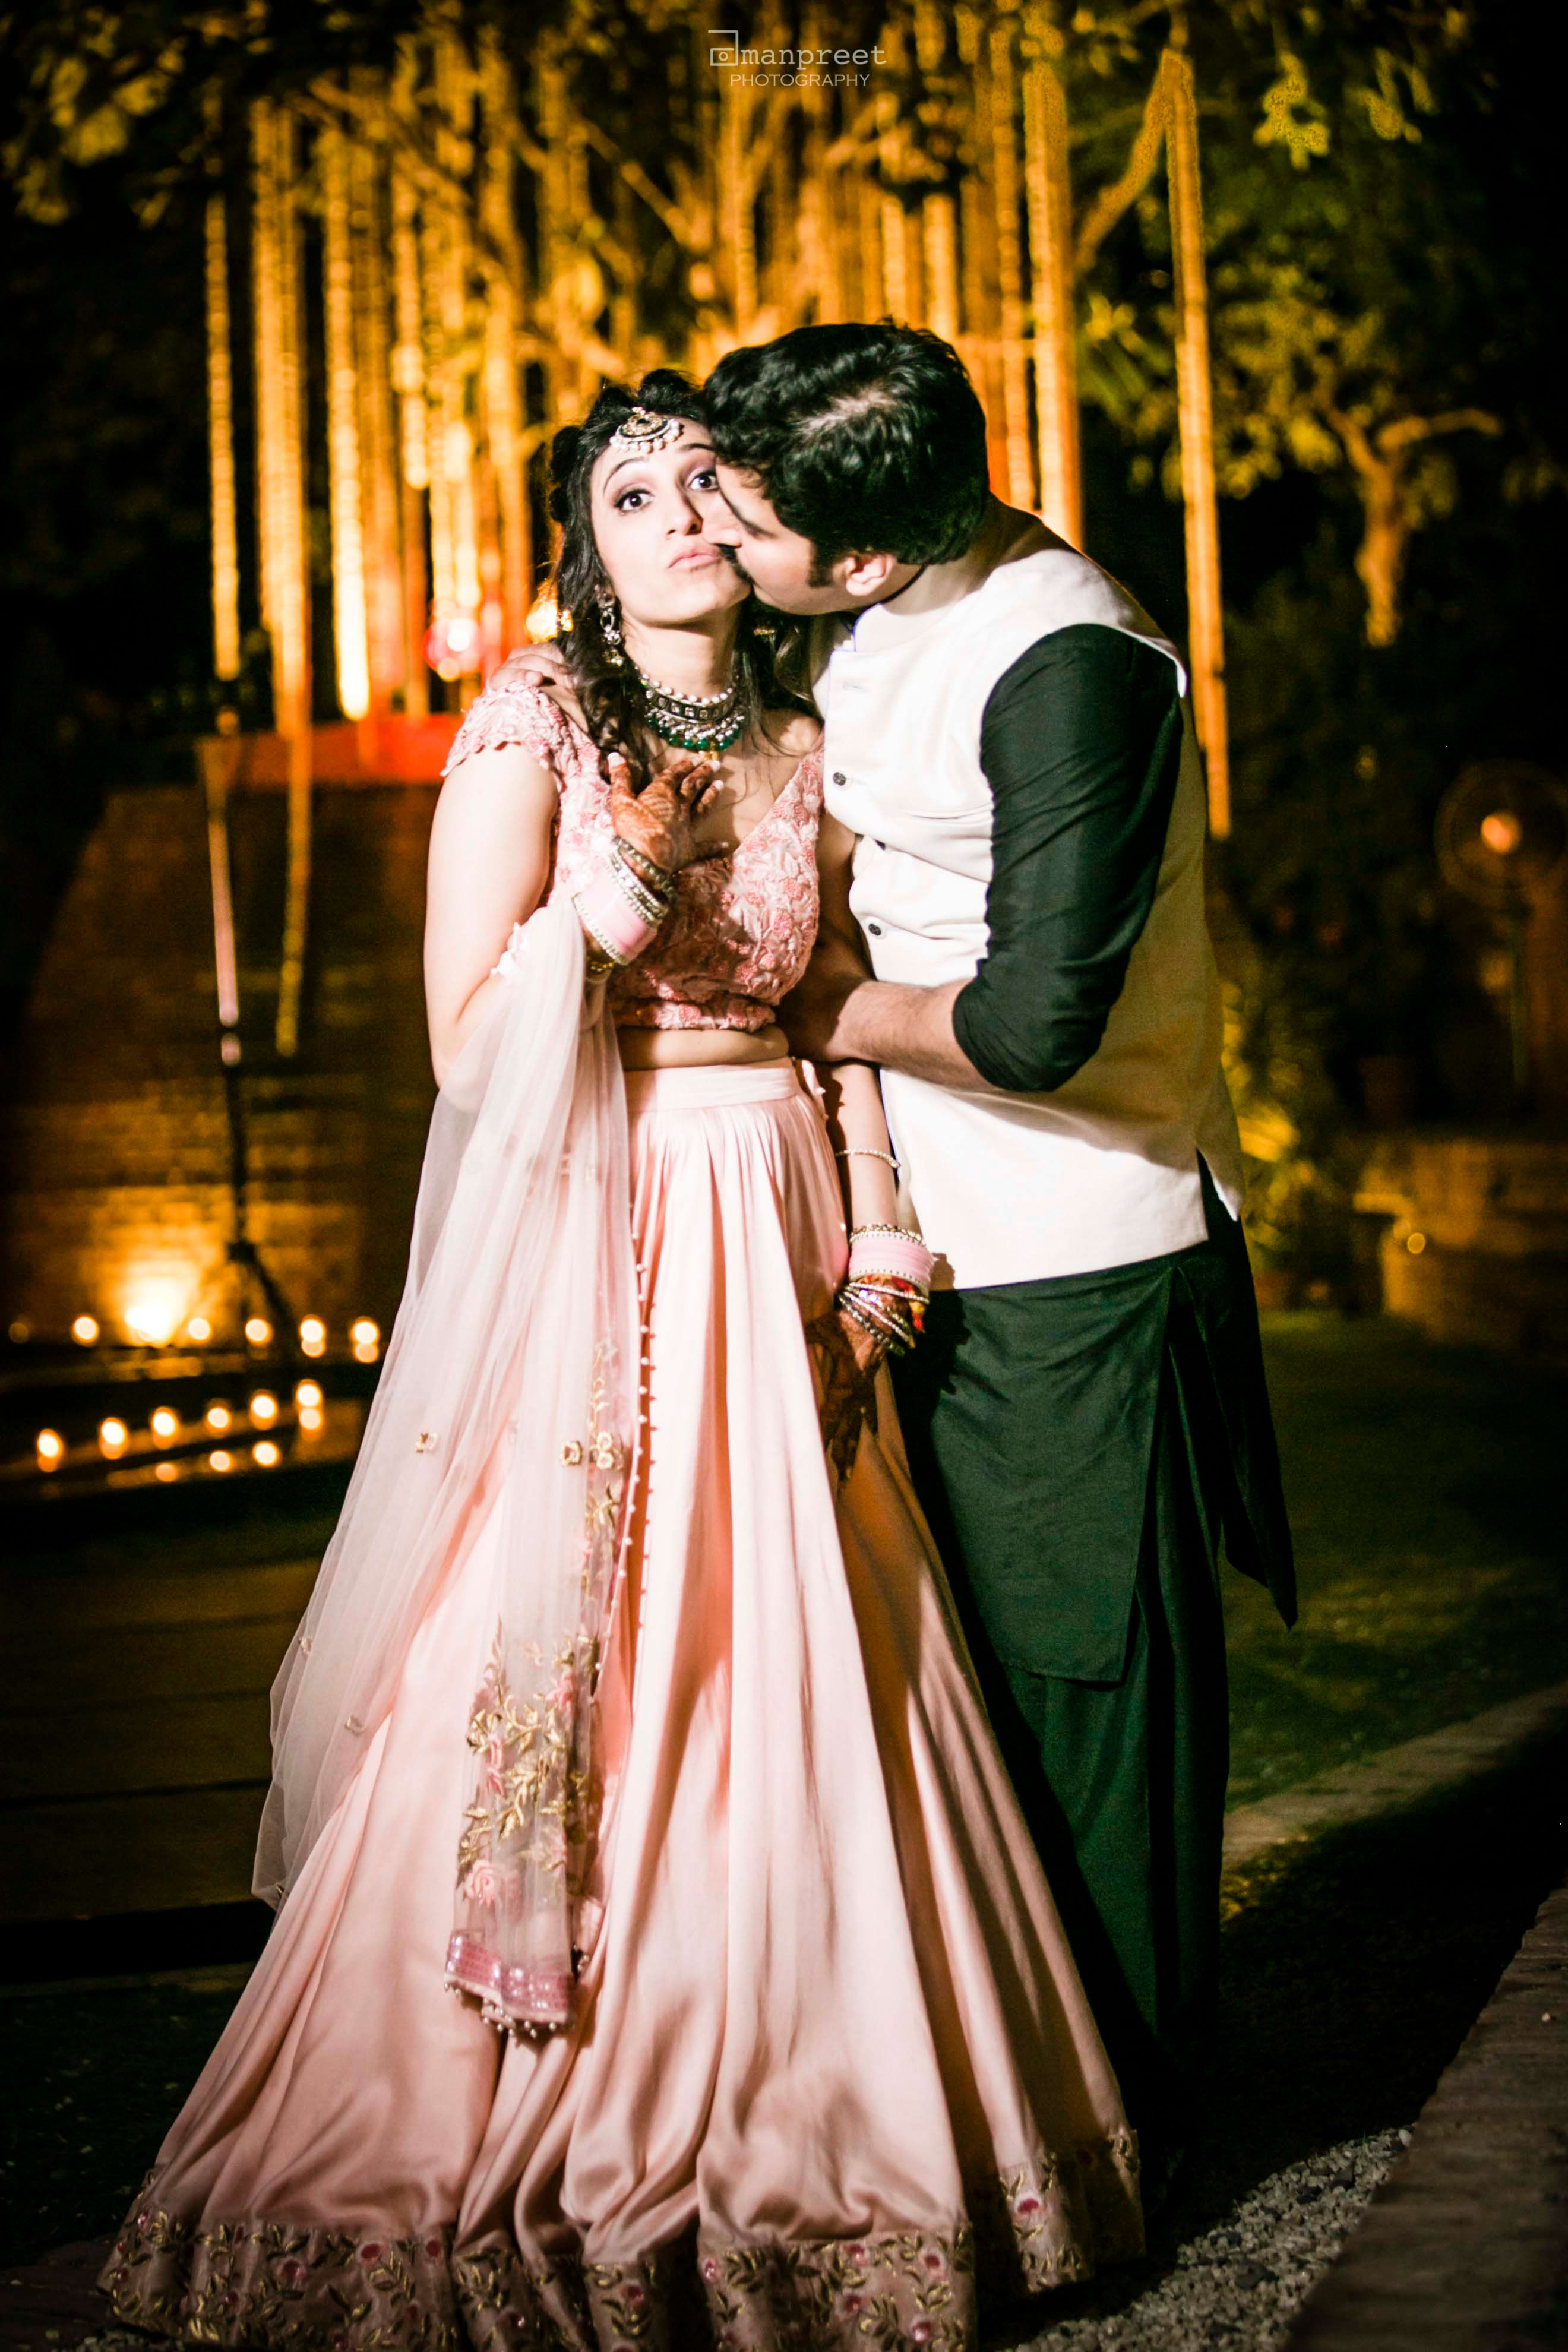 the romantic couple!:geetanjali salon, raju mehandi wala, amanpreet photography, ole couture